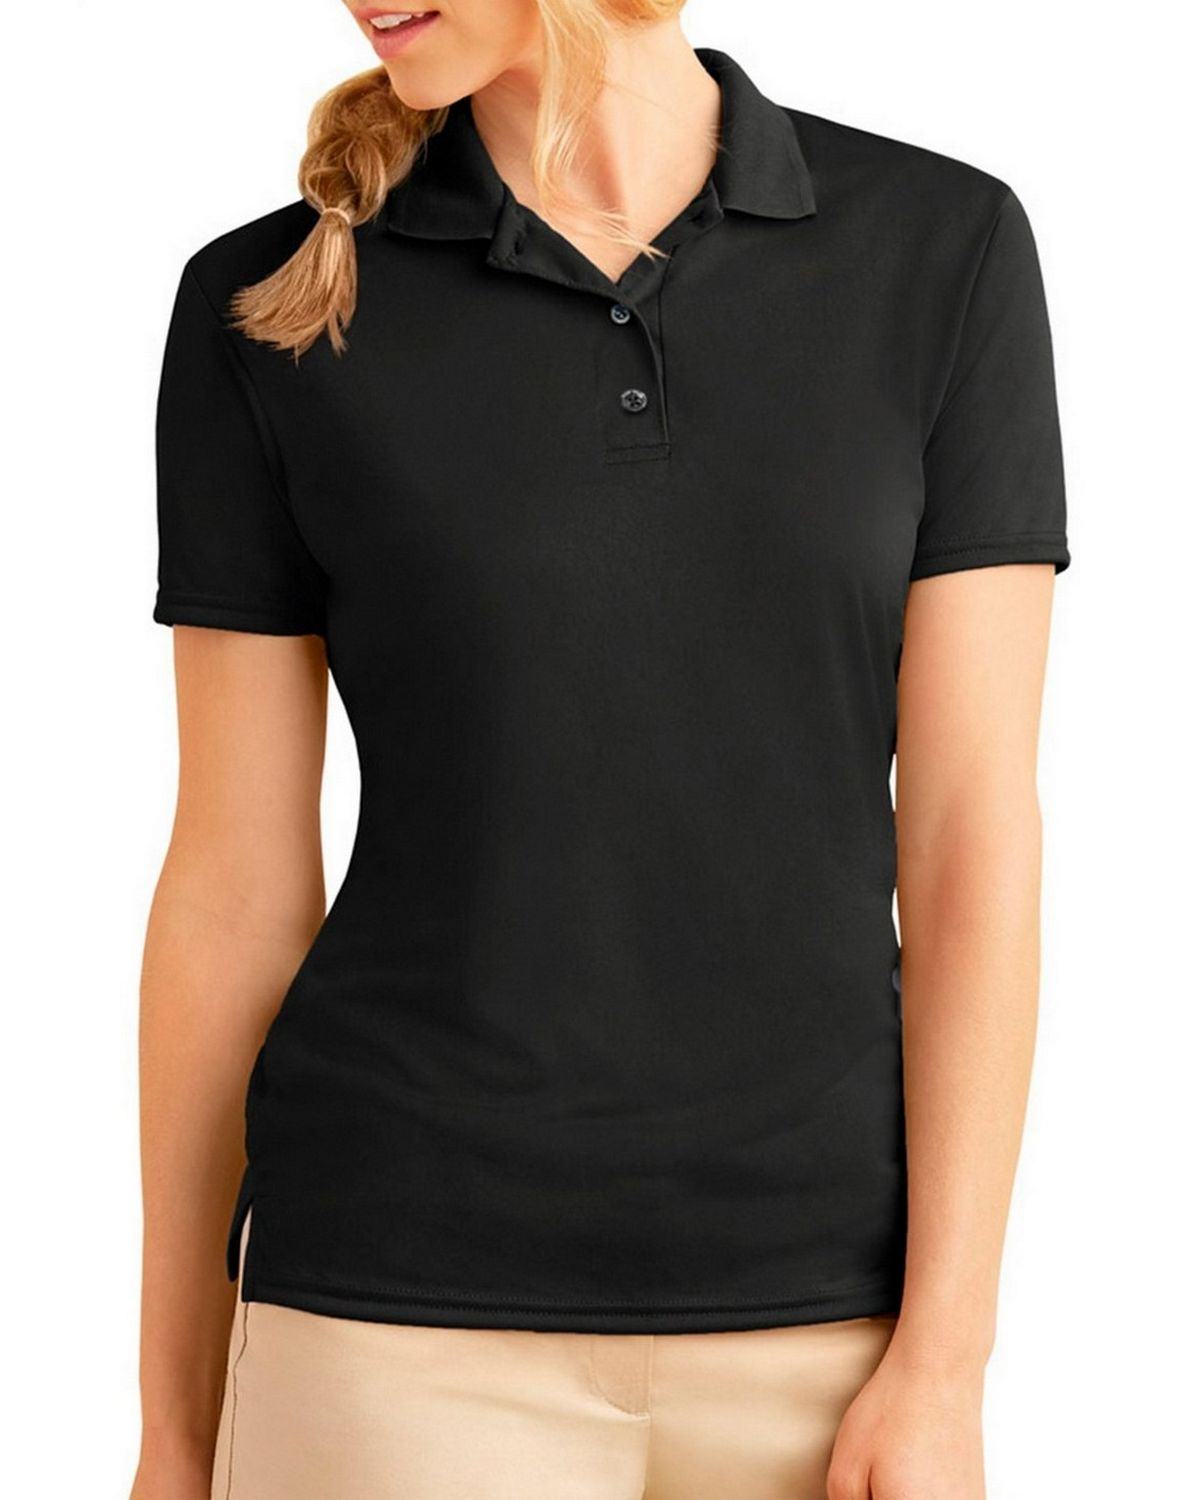 Gildan 44800L Performance Ladies Jersey Polo - Black - M 44800L